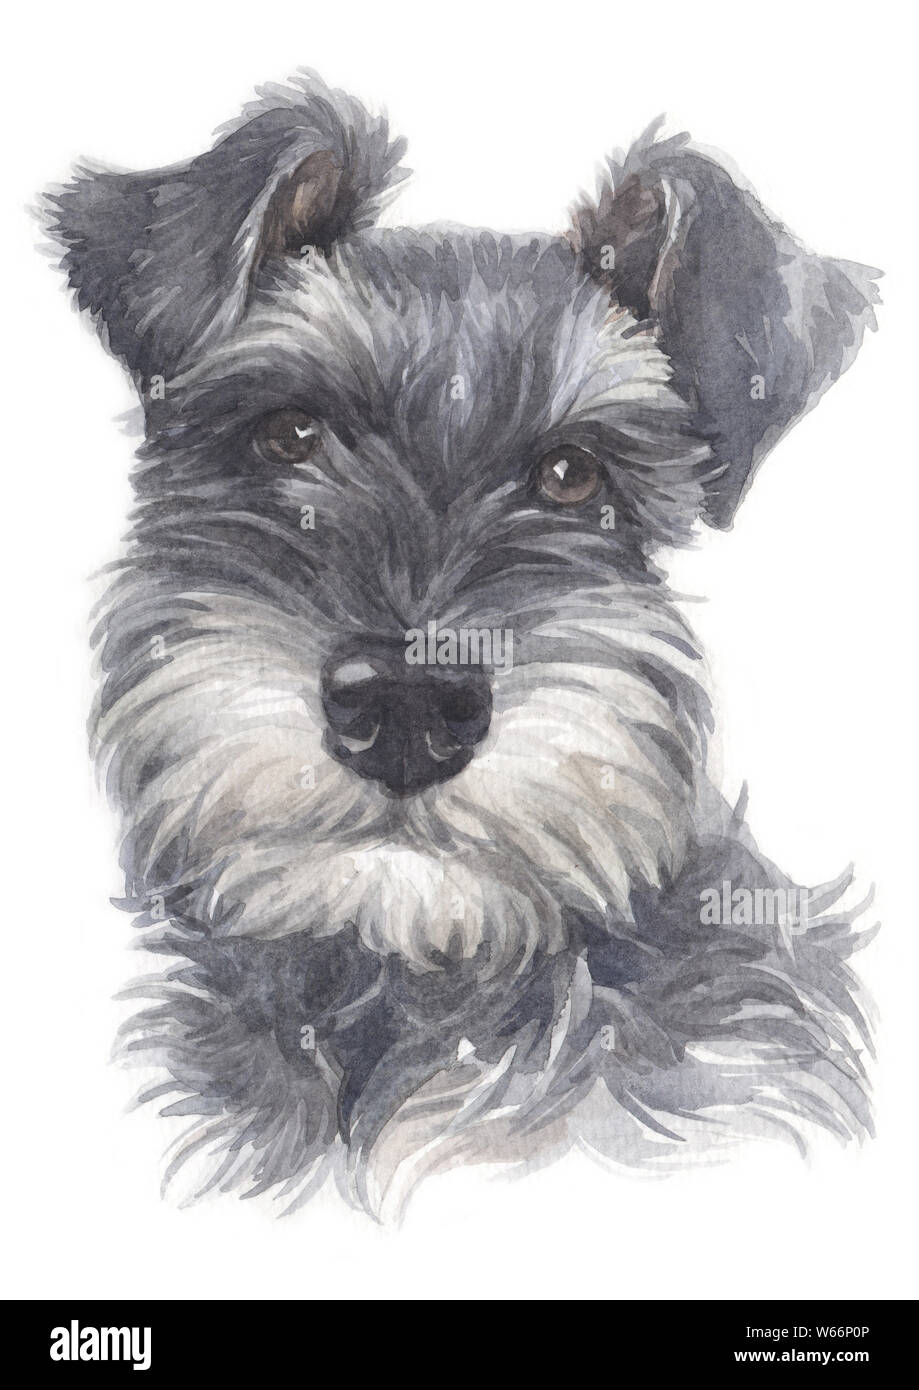 Water colour painting of Miniature Schnauzer 026 Stock Photo